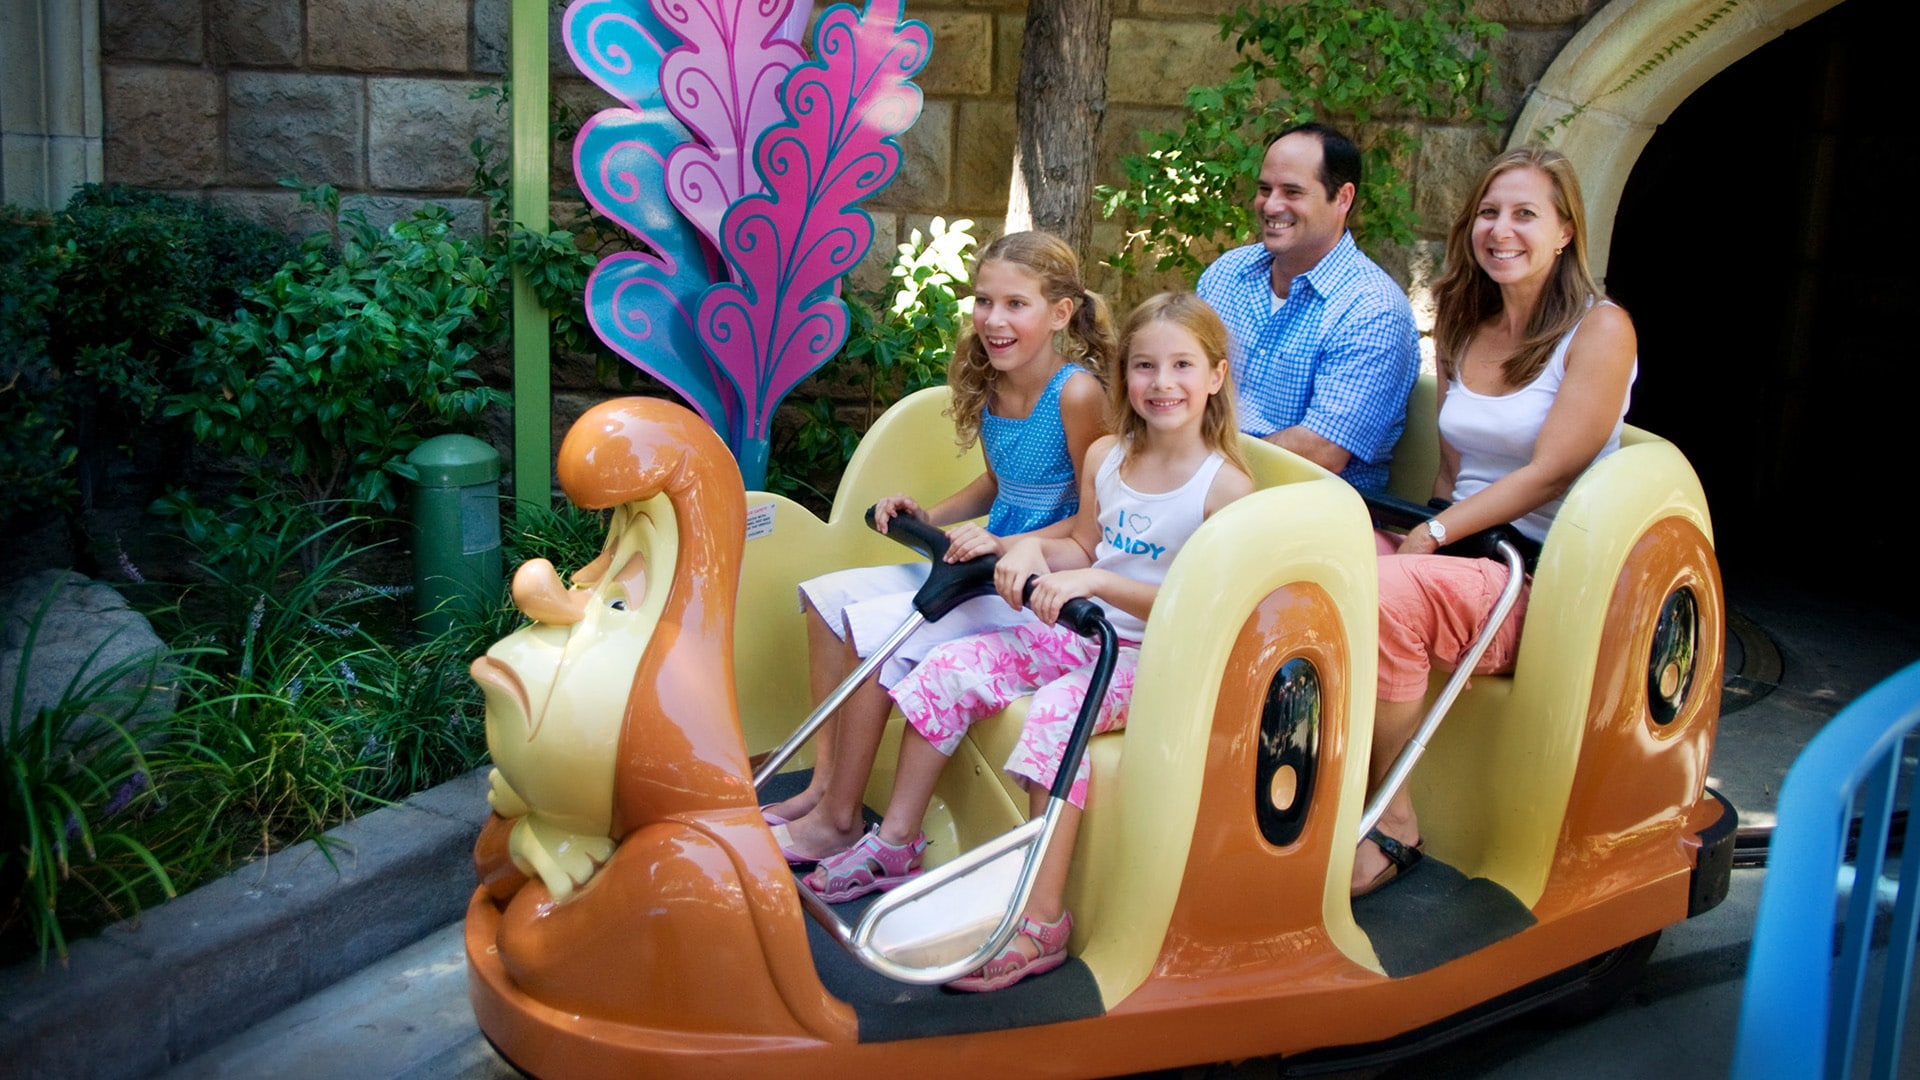 Alice in Wonderland ride in Disneyland